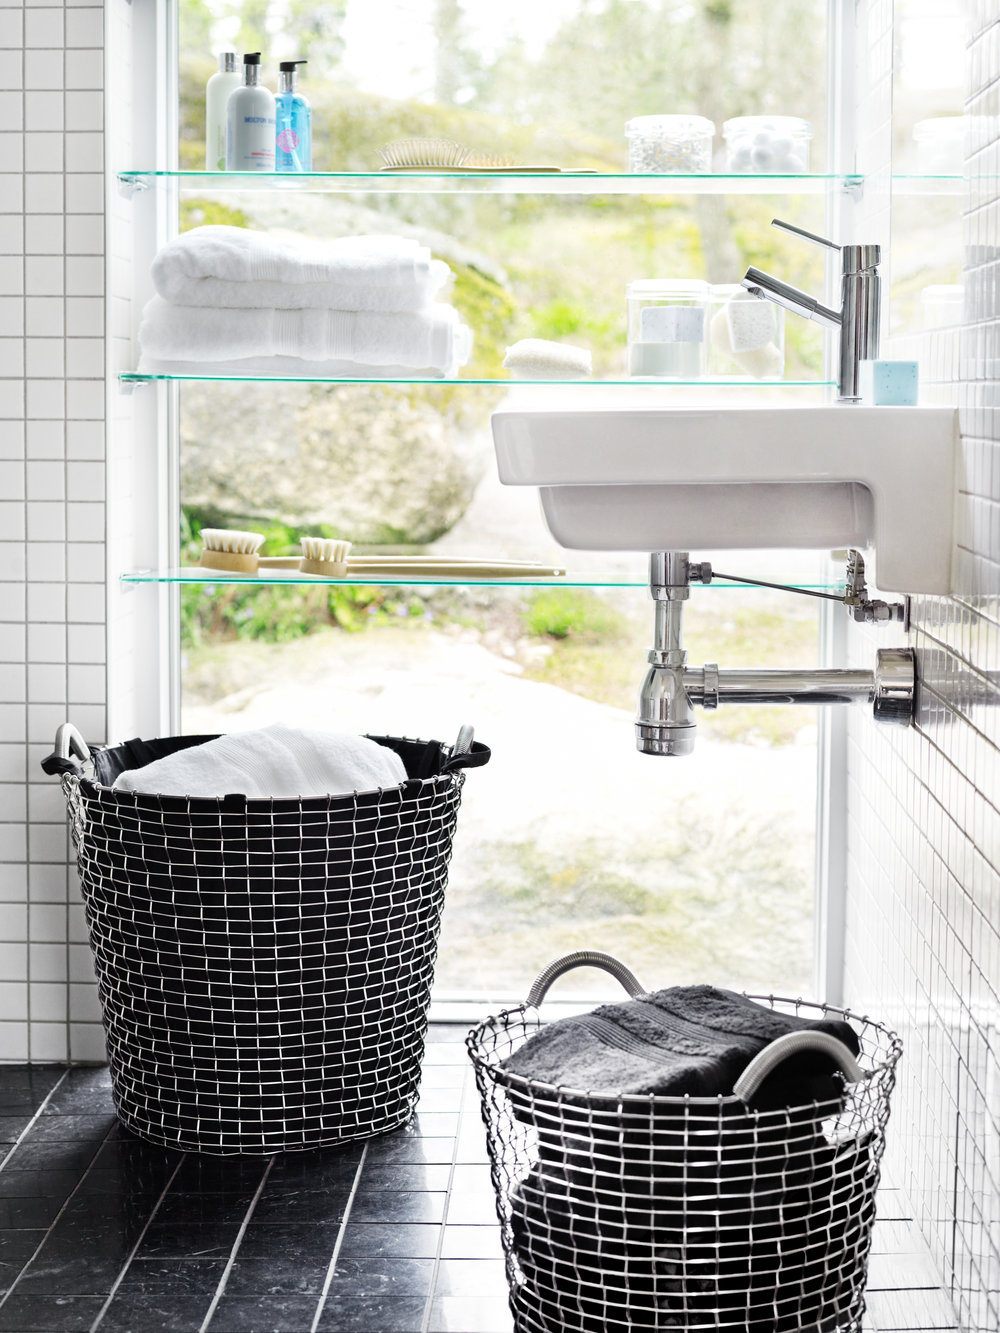 Classic 65 & 24, Laundry bag - Bathroom.jpg